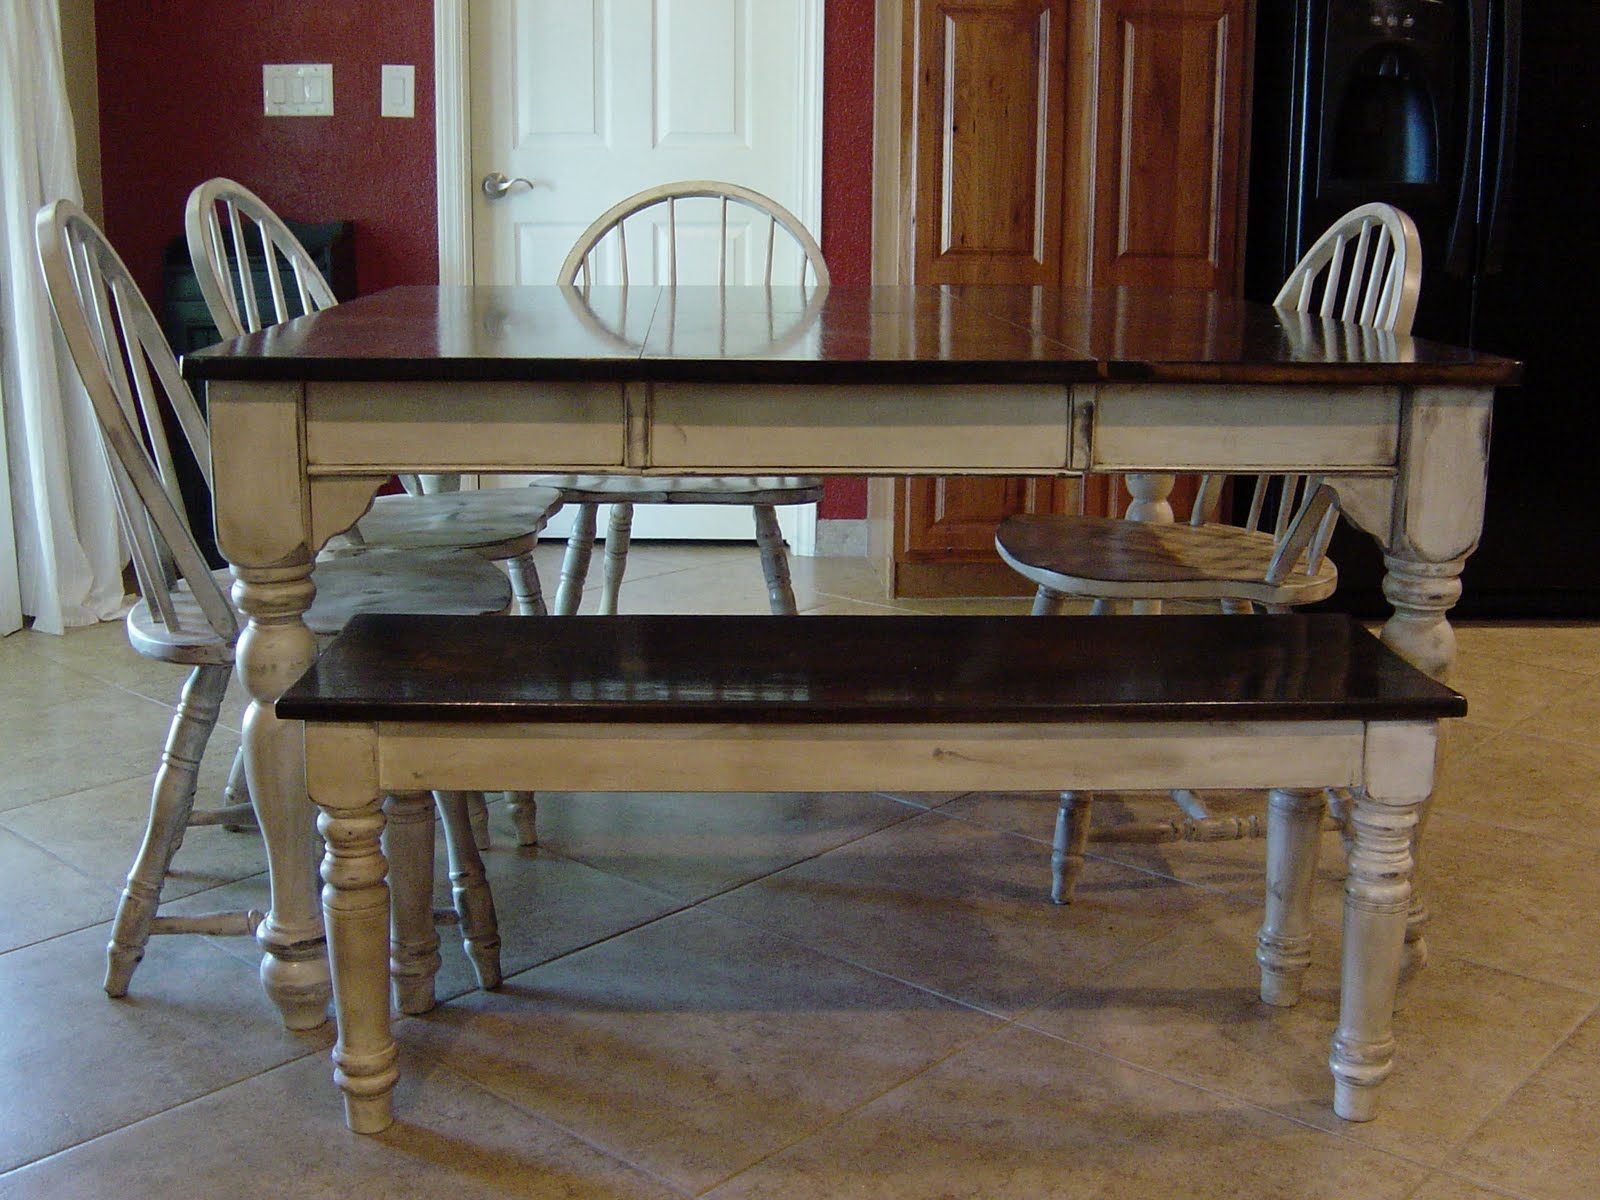 Remodelaholic kitchen table refinished with distressed look - Refinishing a kitchen table ...